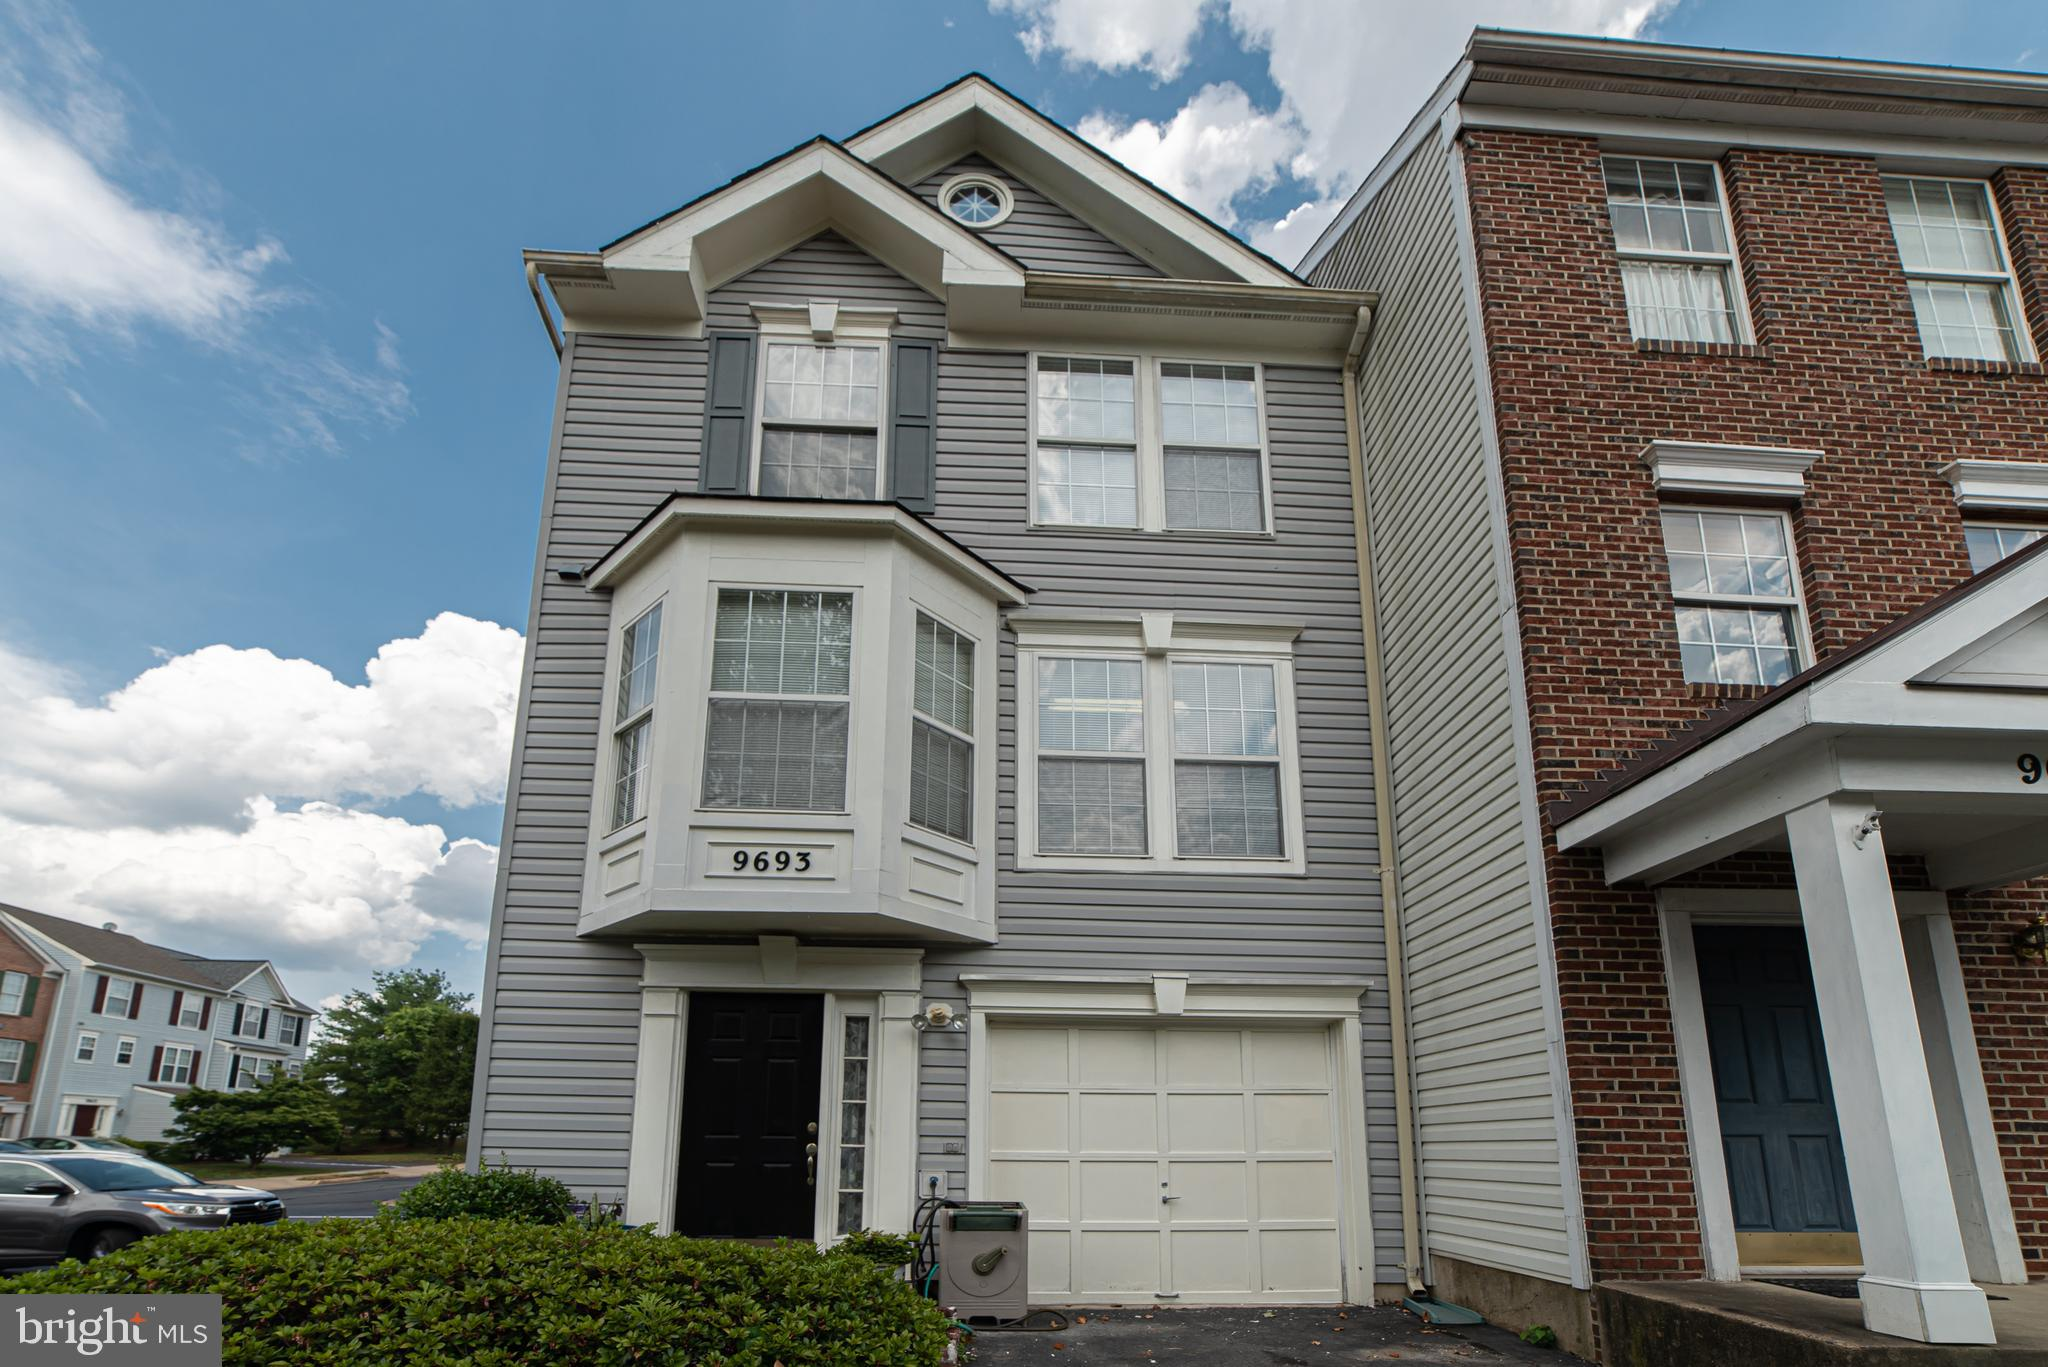 Spacious End Unit Townhouse in Saybrooke - Braemar! 3 Level - 3 BR / 2 Full / 2 Half Bths.   Recent